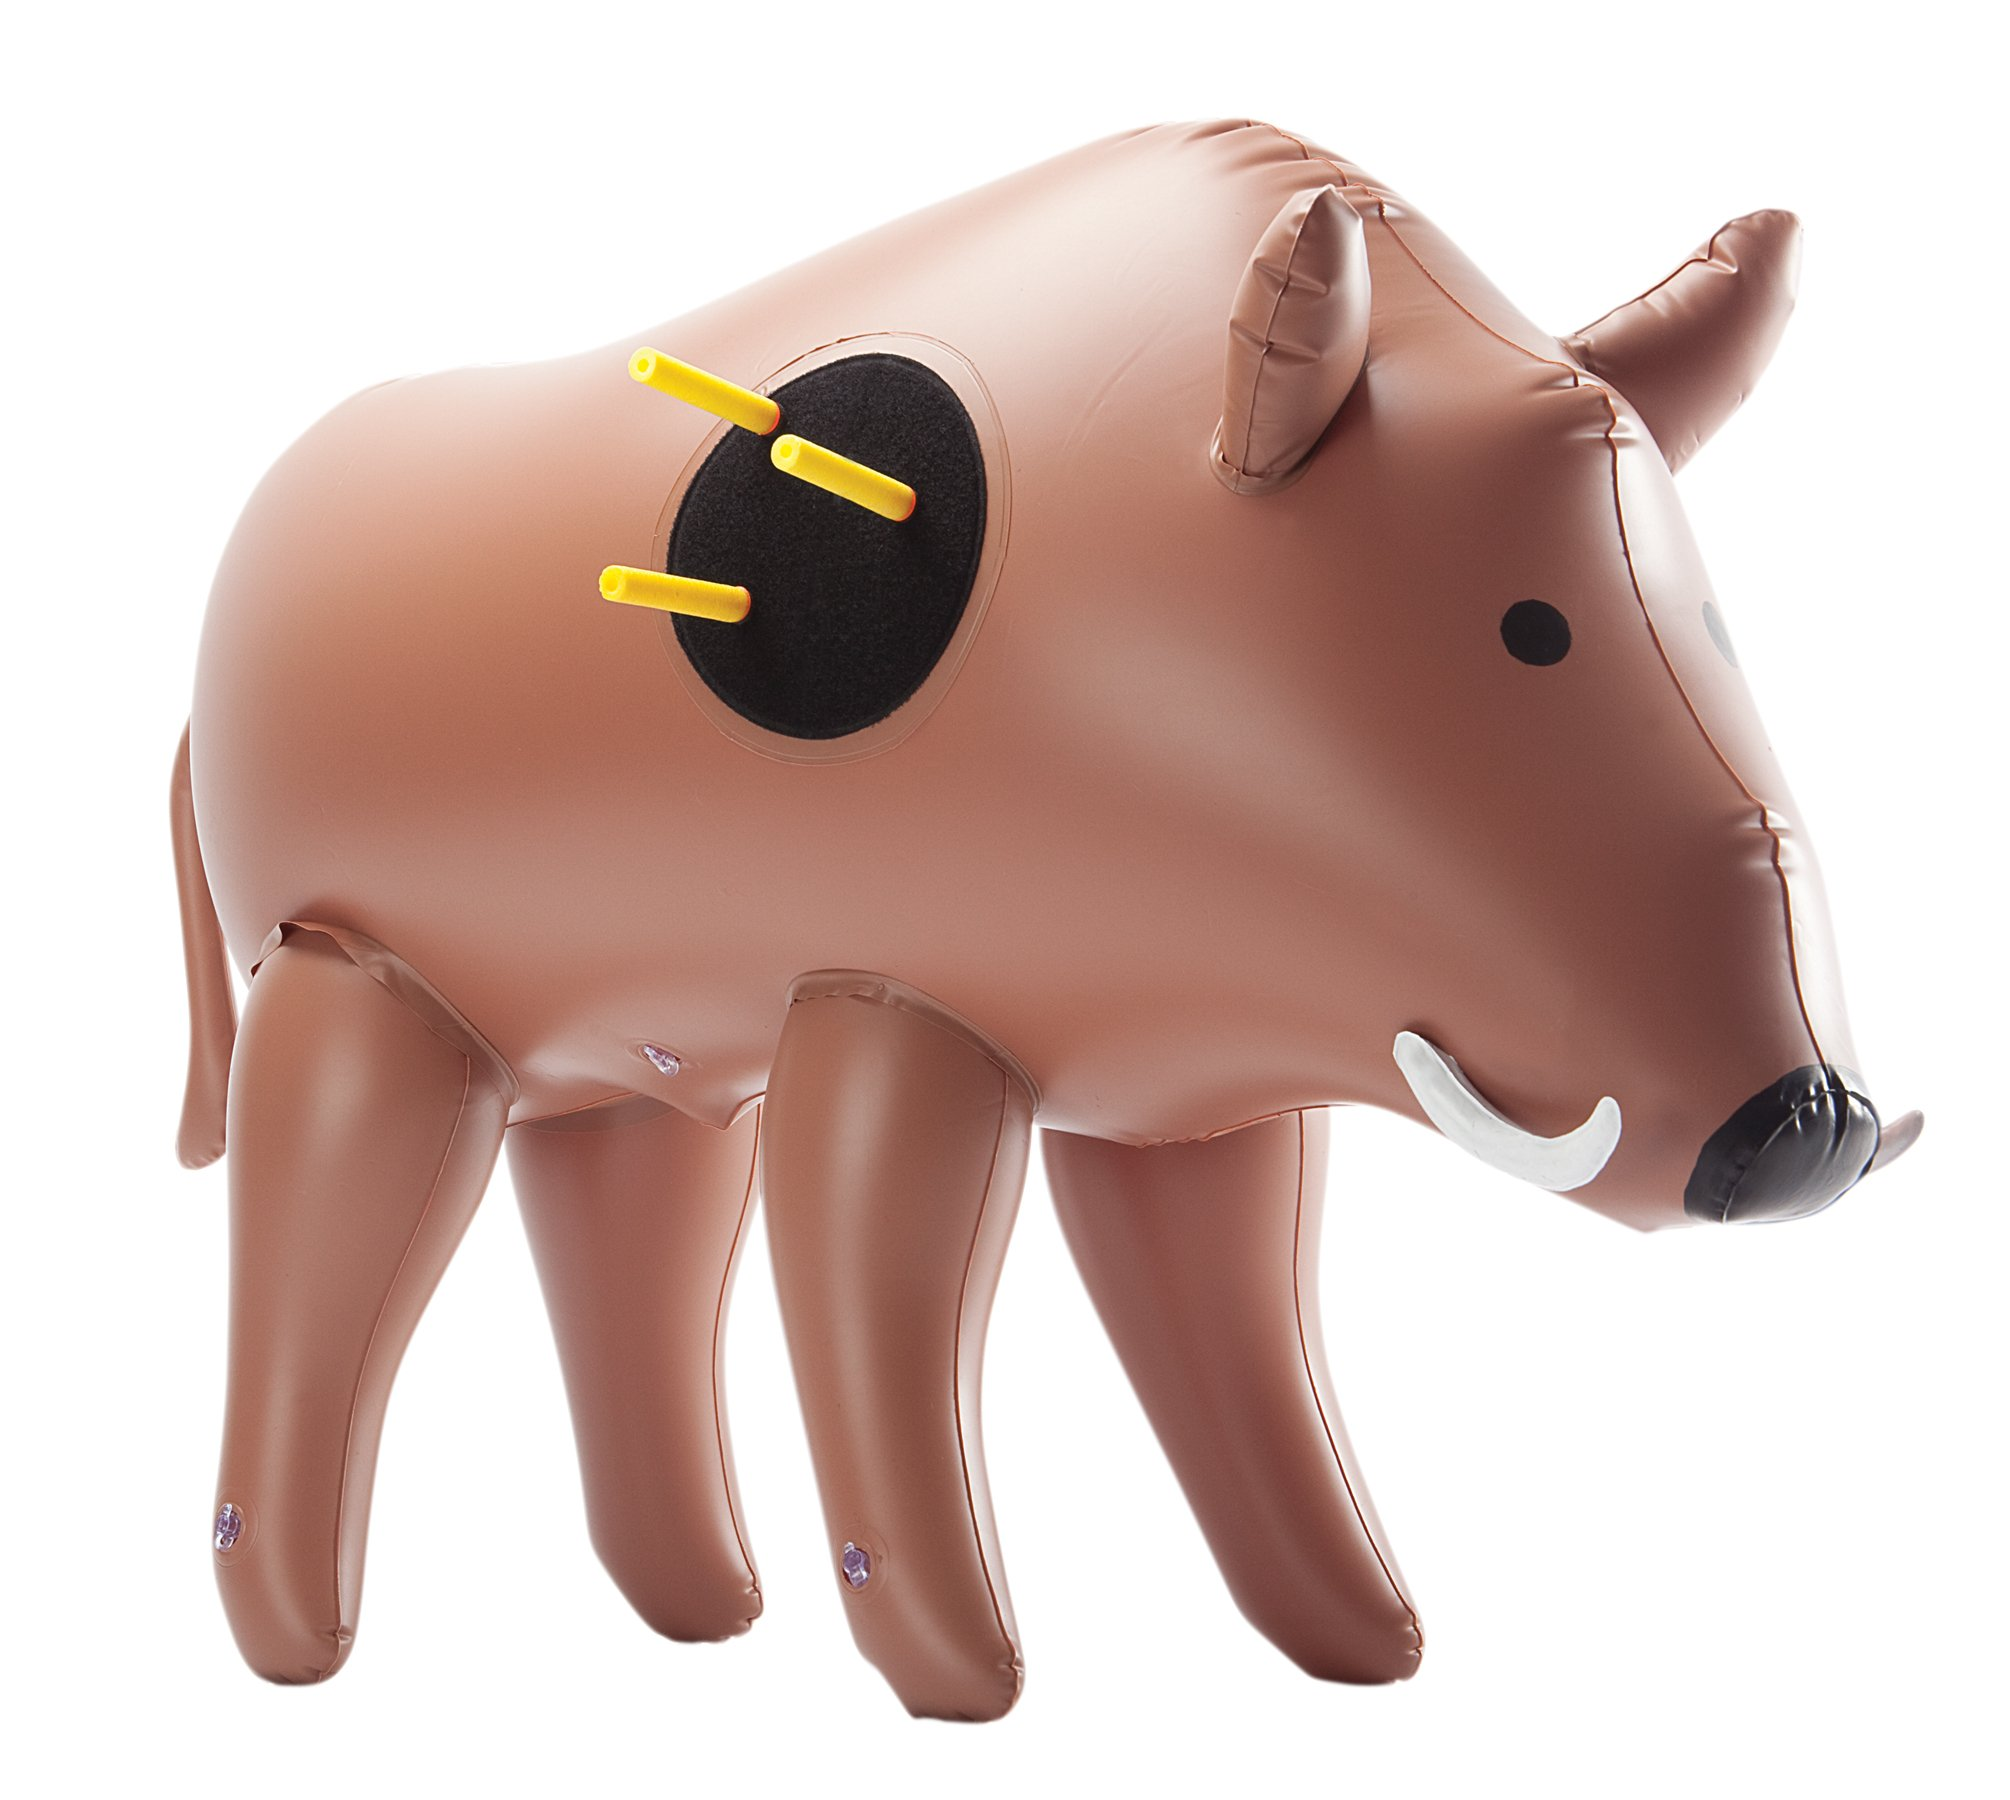 NXT Generation 3D Inflatable Boar Target - Realistic Looking Inflatable Buck - Suitable for Indoor and Outdoor Play - For VELCRO Tipped Nerf Like Foam Darts